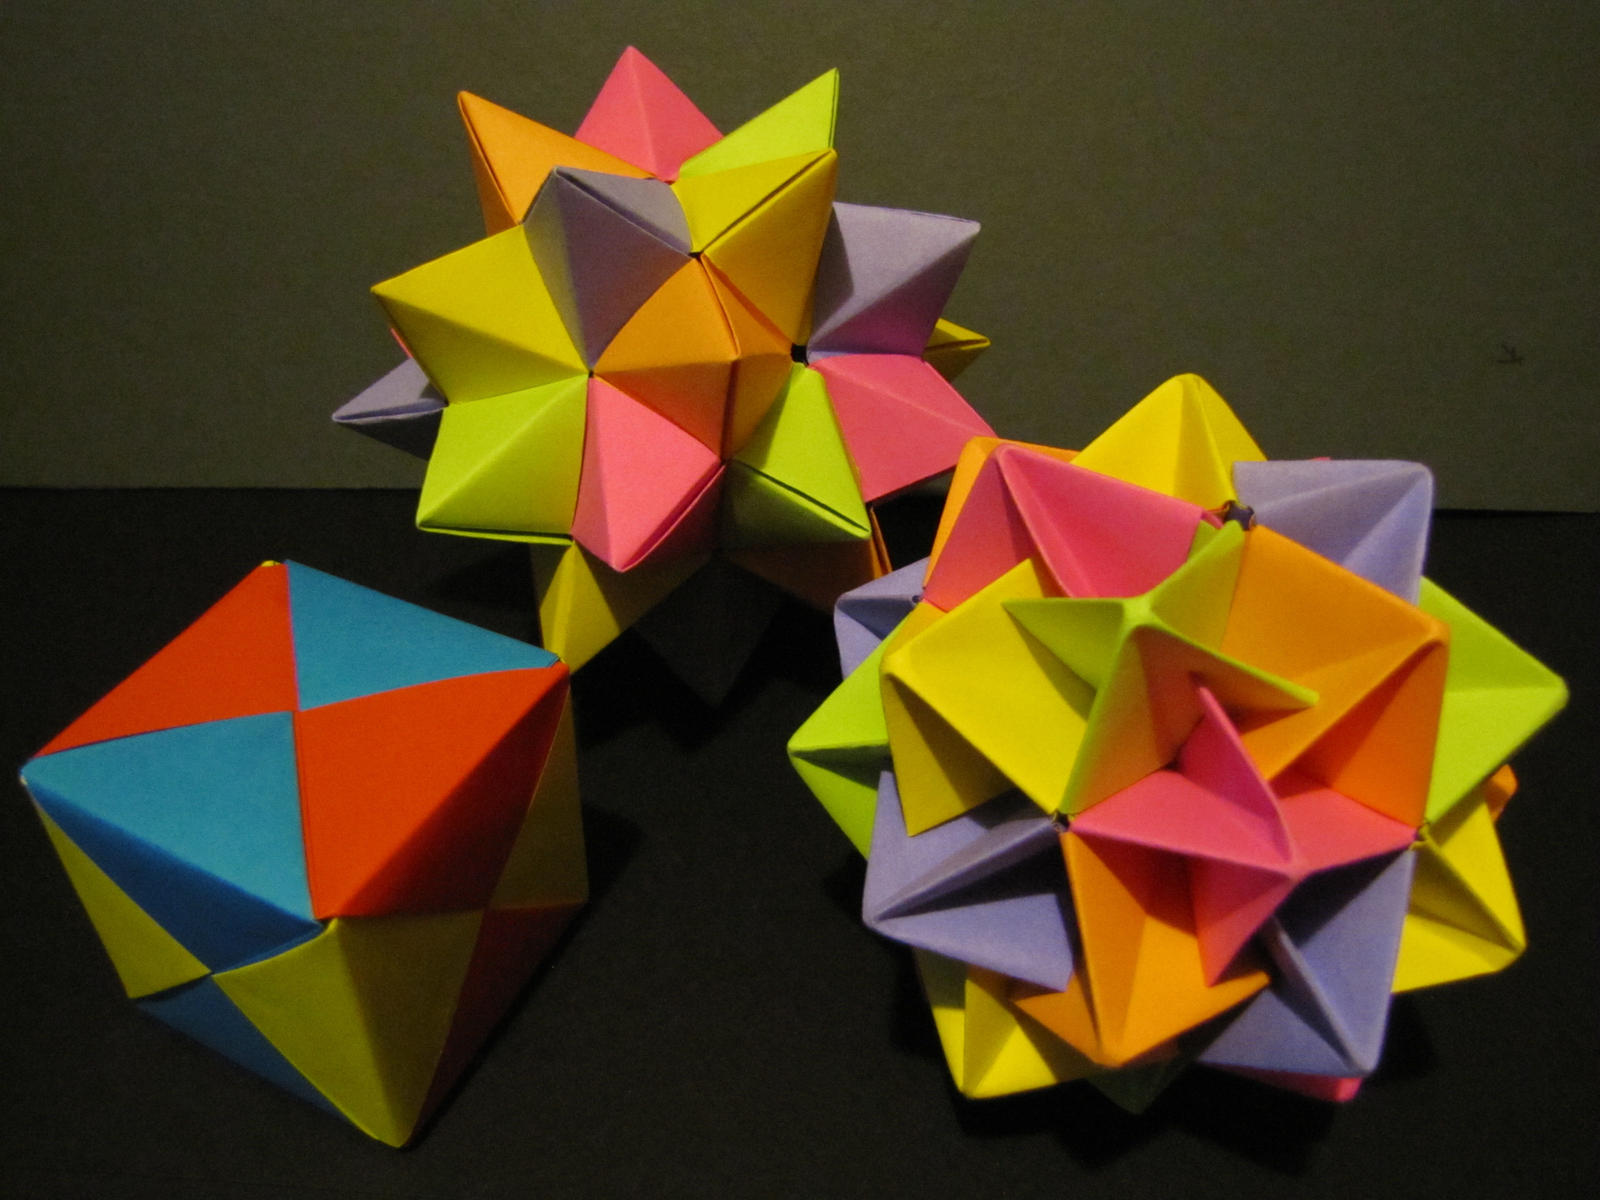 Modular Origami: How to Make a Truncated Icosahedron, Pentakis ... | 1200x1600